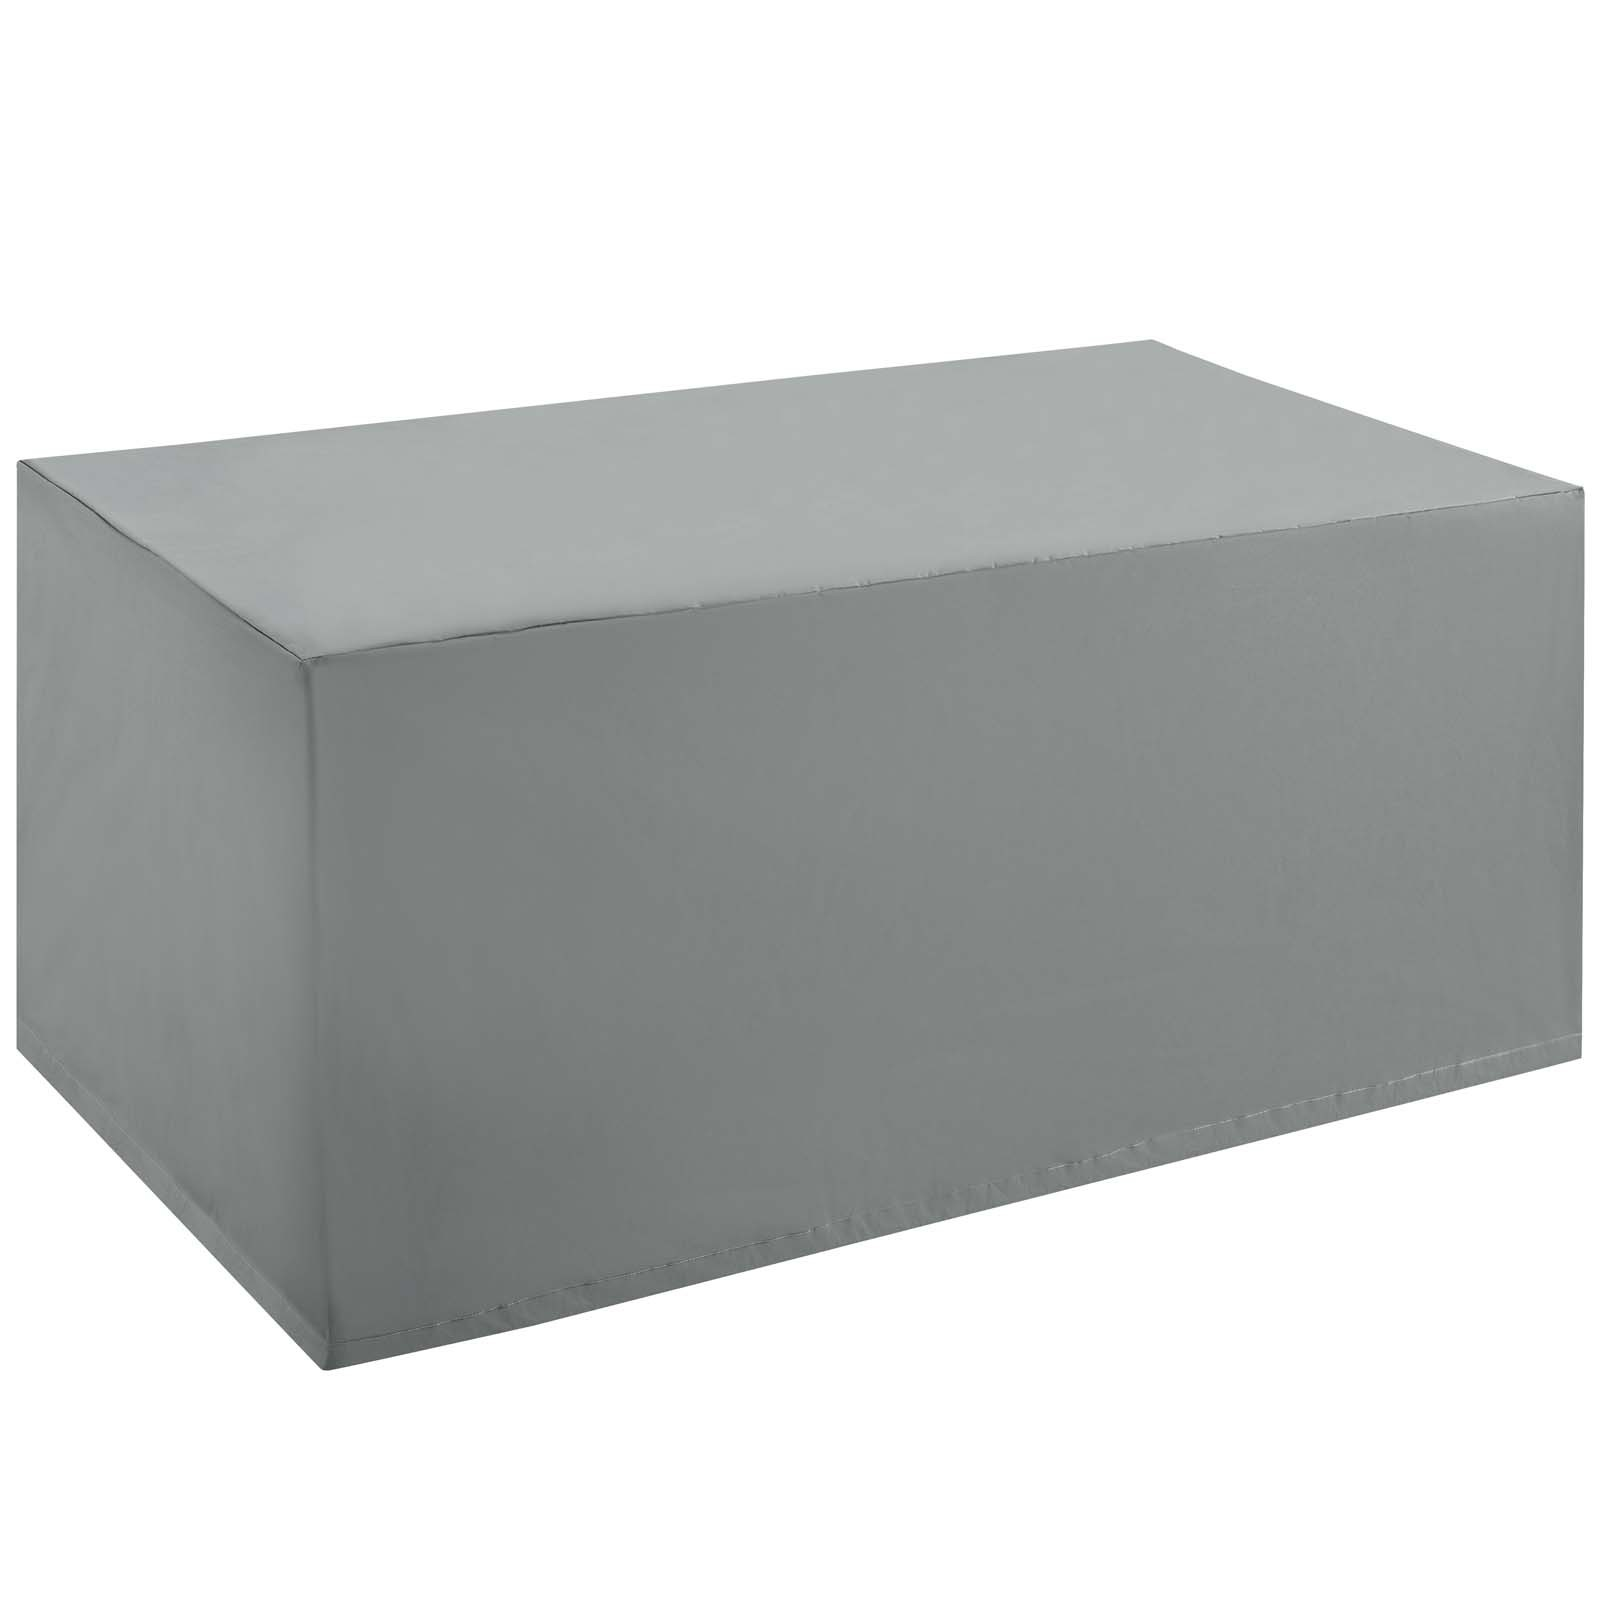 Immerse Convene/Sojourn/Summon Coffee Table Outdoor Patio Furniture Cover in Gray